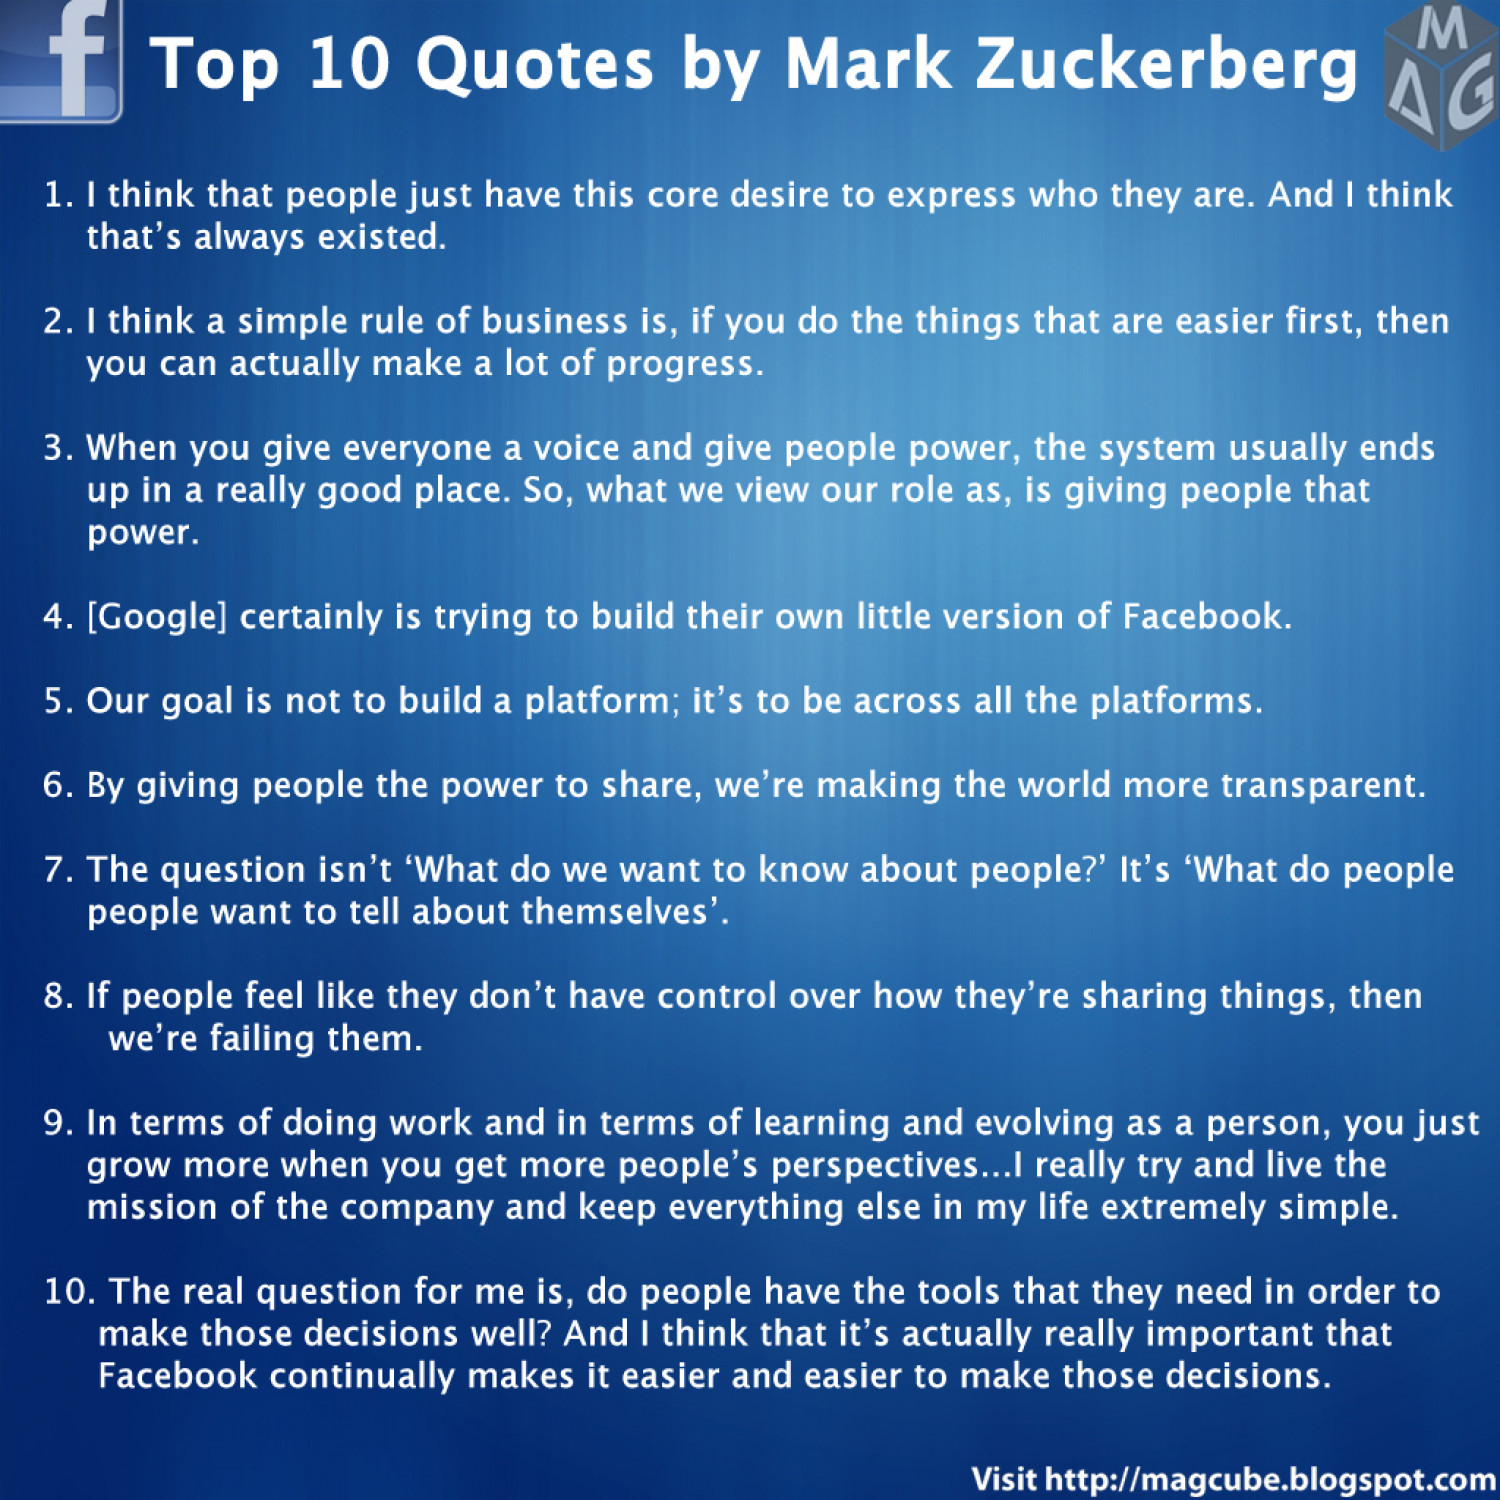 Really Good Quotes Top 10 Quotesmark Zuckerberg  Visual.ly